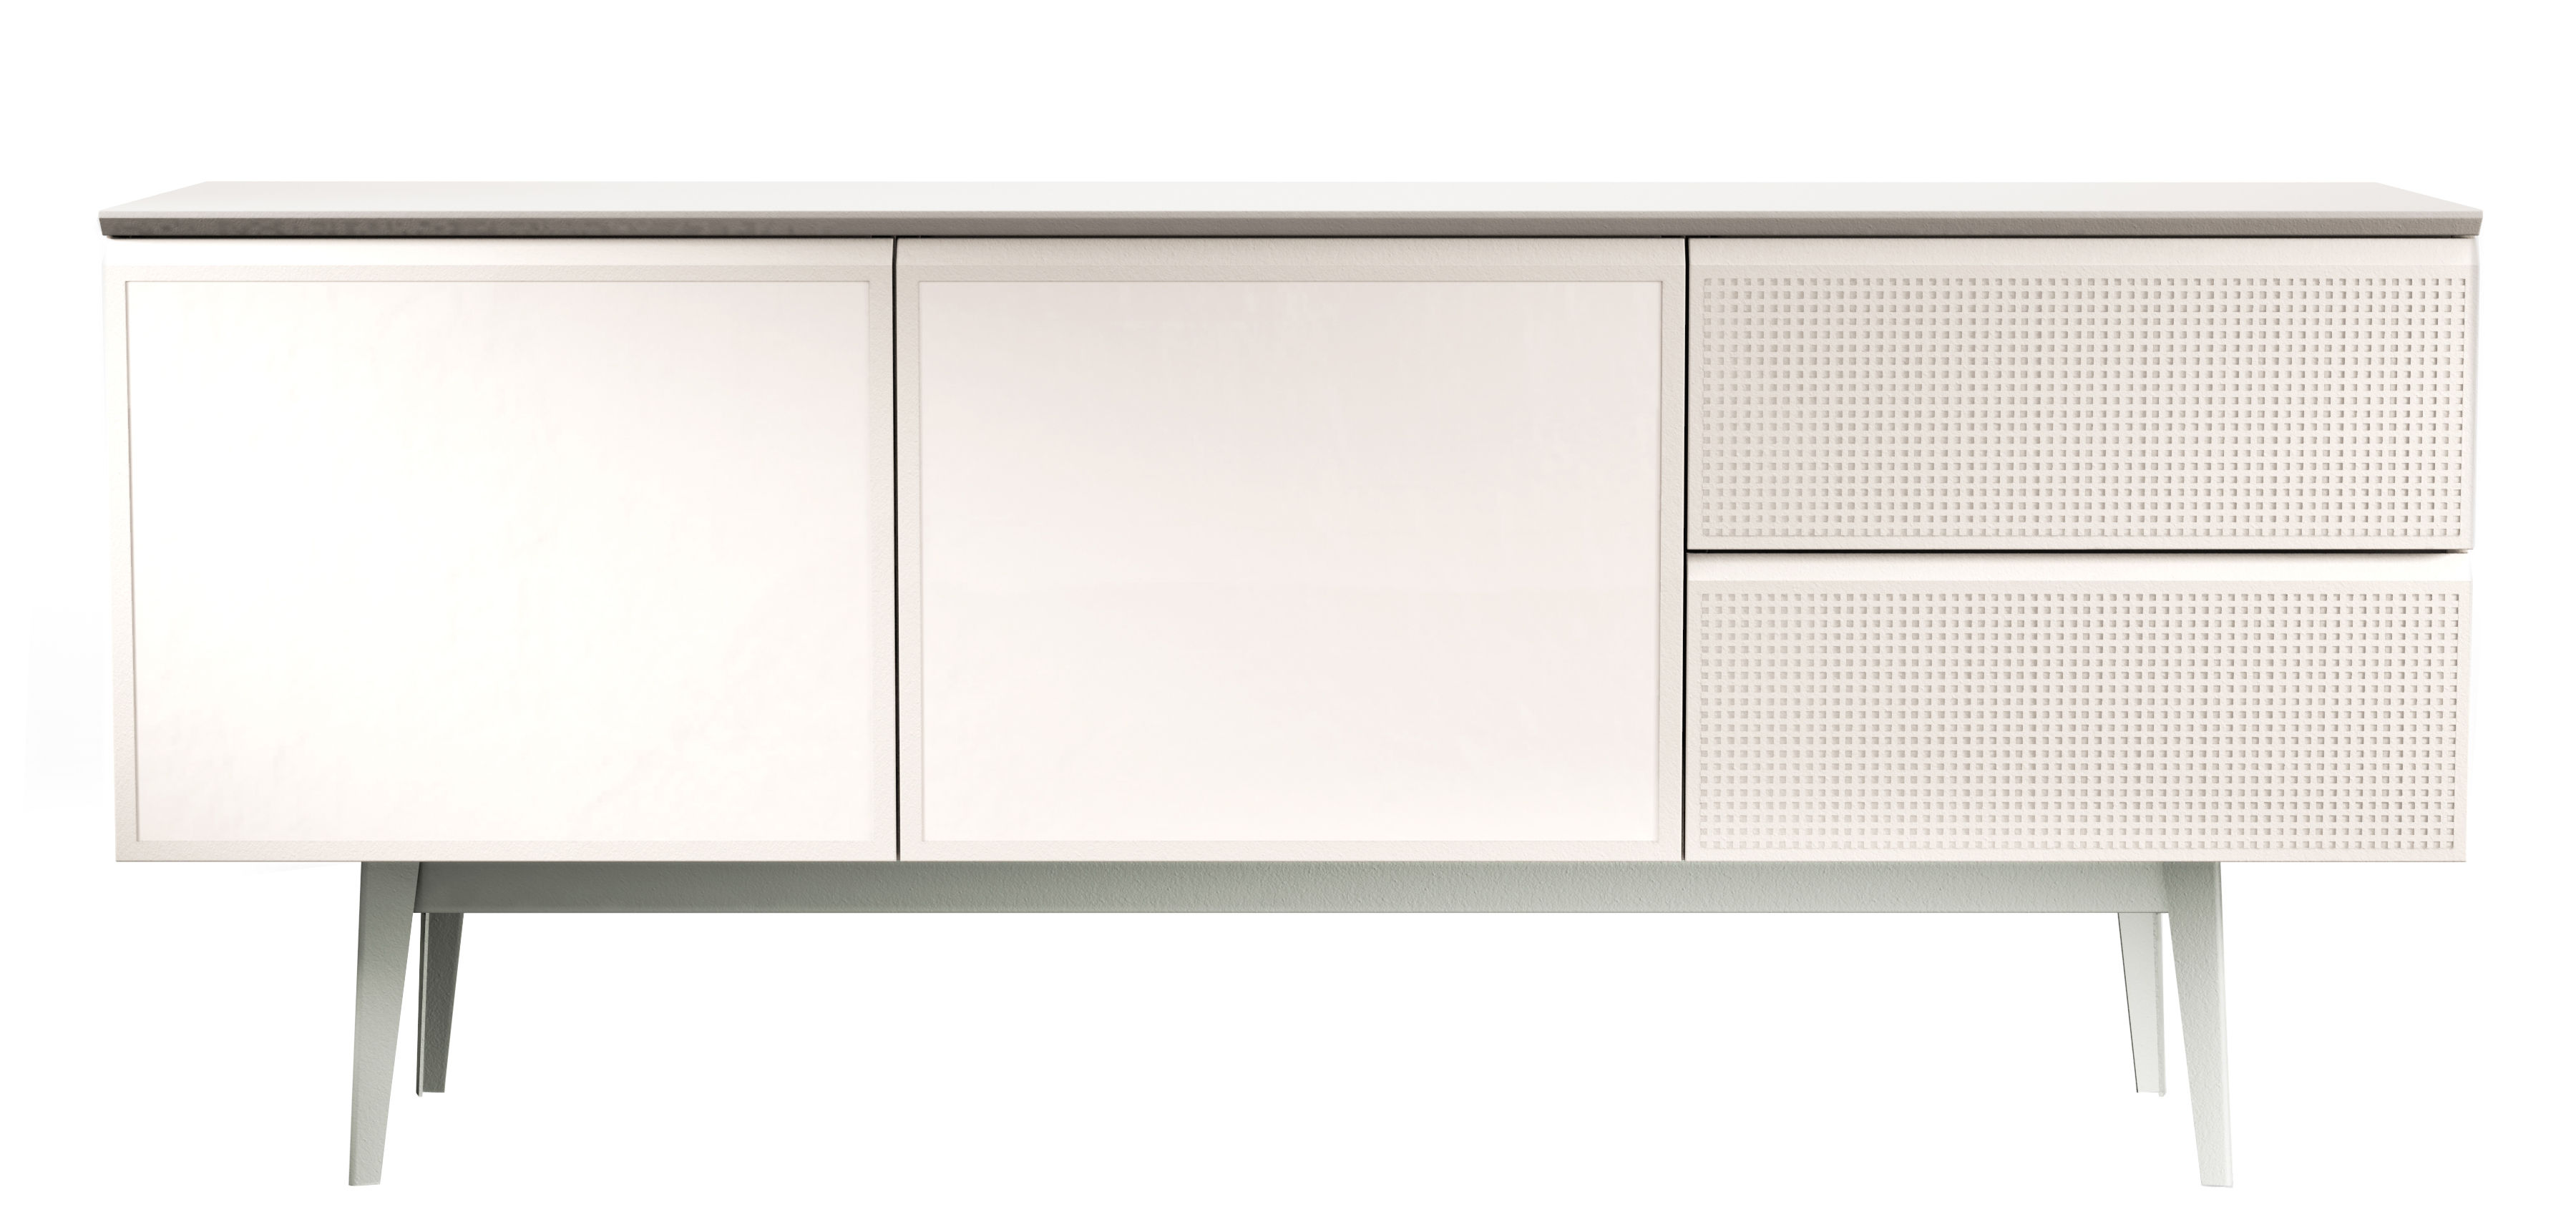 Furniture - Dressers & Storage Units - Voltaire Dresser - L 180 cm by Diesel with Moroso - White / Turtledove top - Lacquered MDF, Melamine wood, Perforated steel